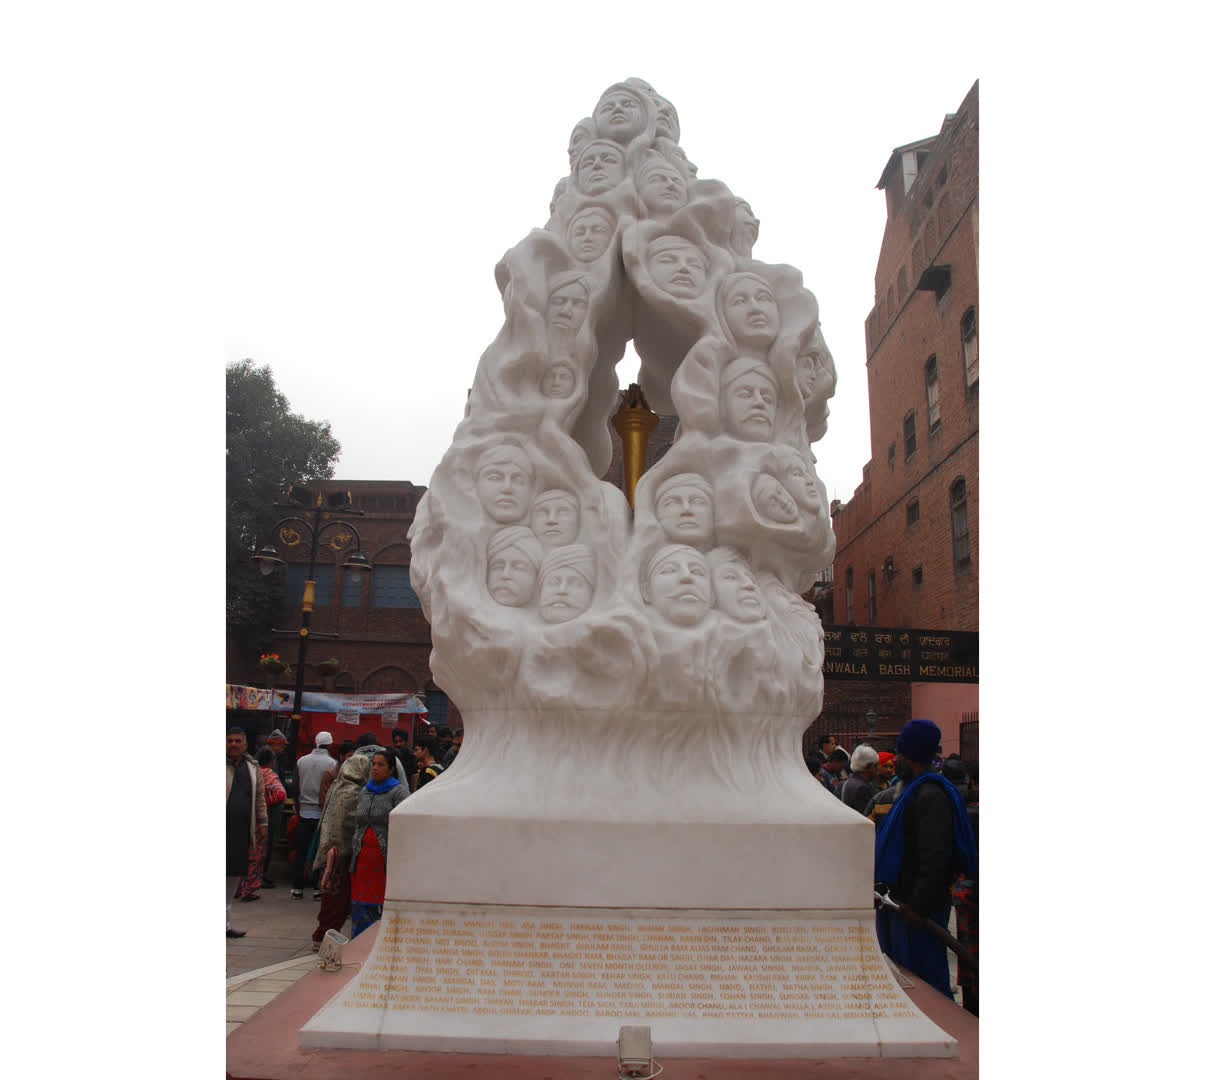 Statue dedicated to victims of Jallianwala Bagh massacre